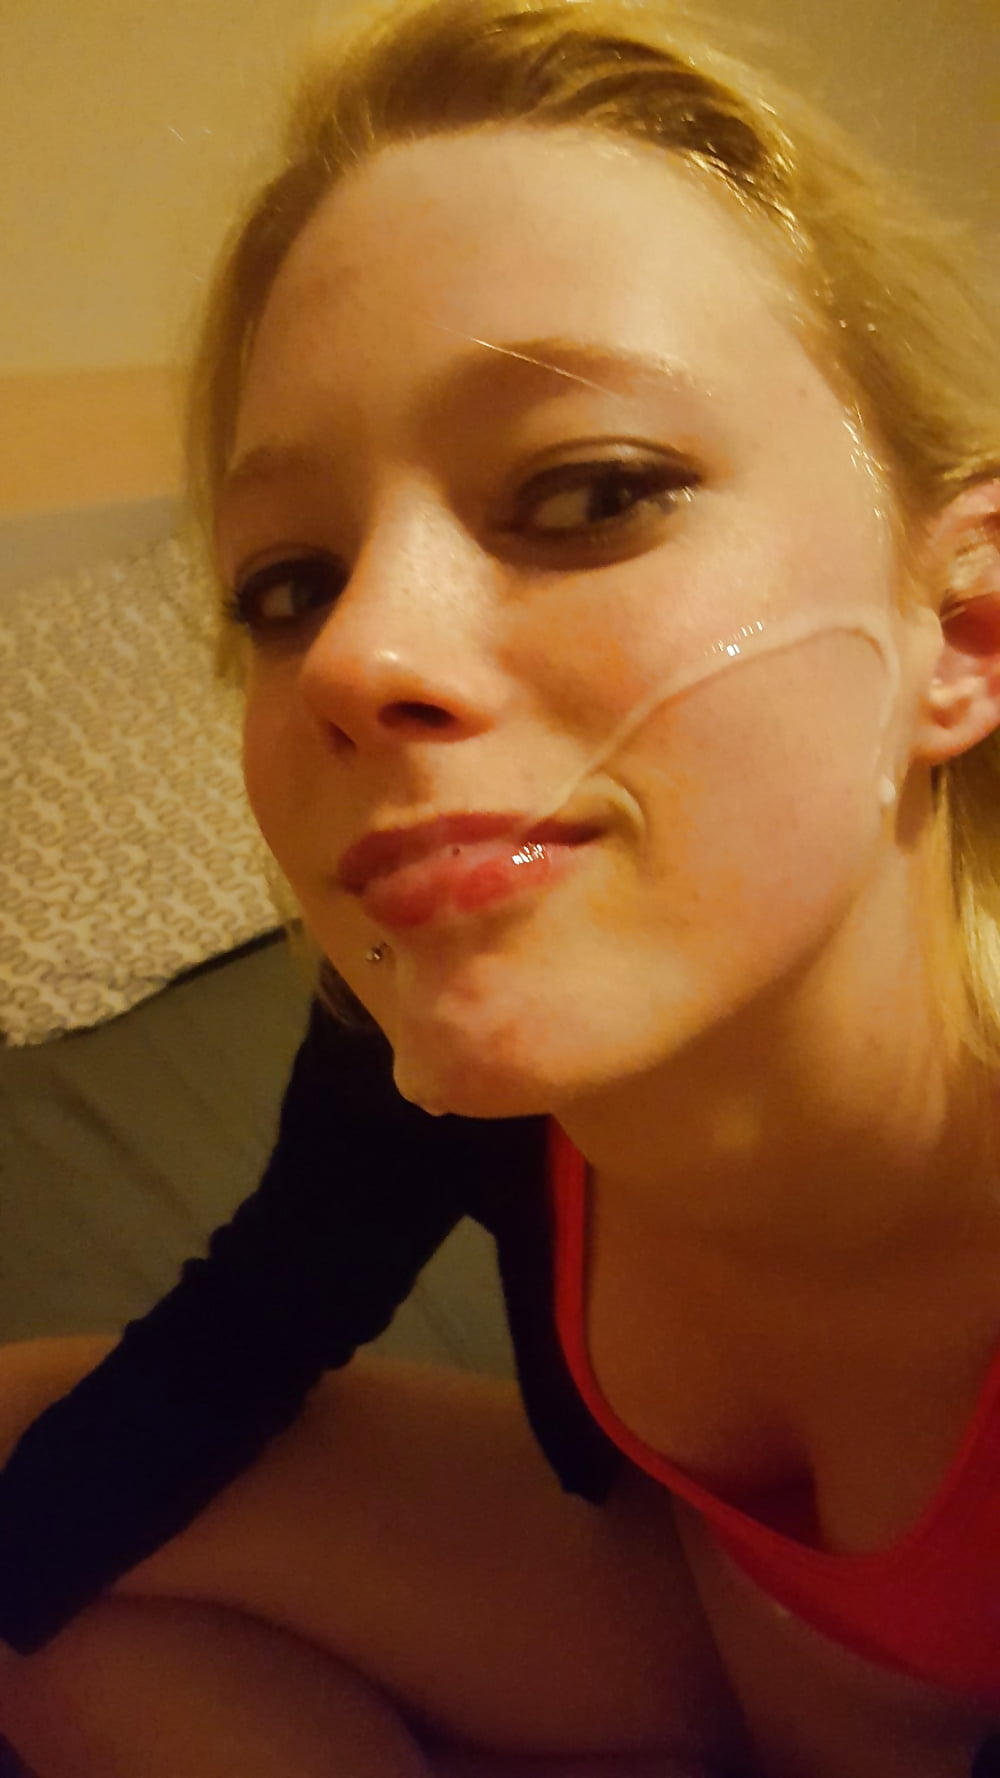 Girlfriend facial cum selfie, free young squirt videos